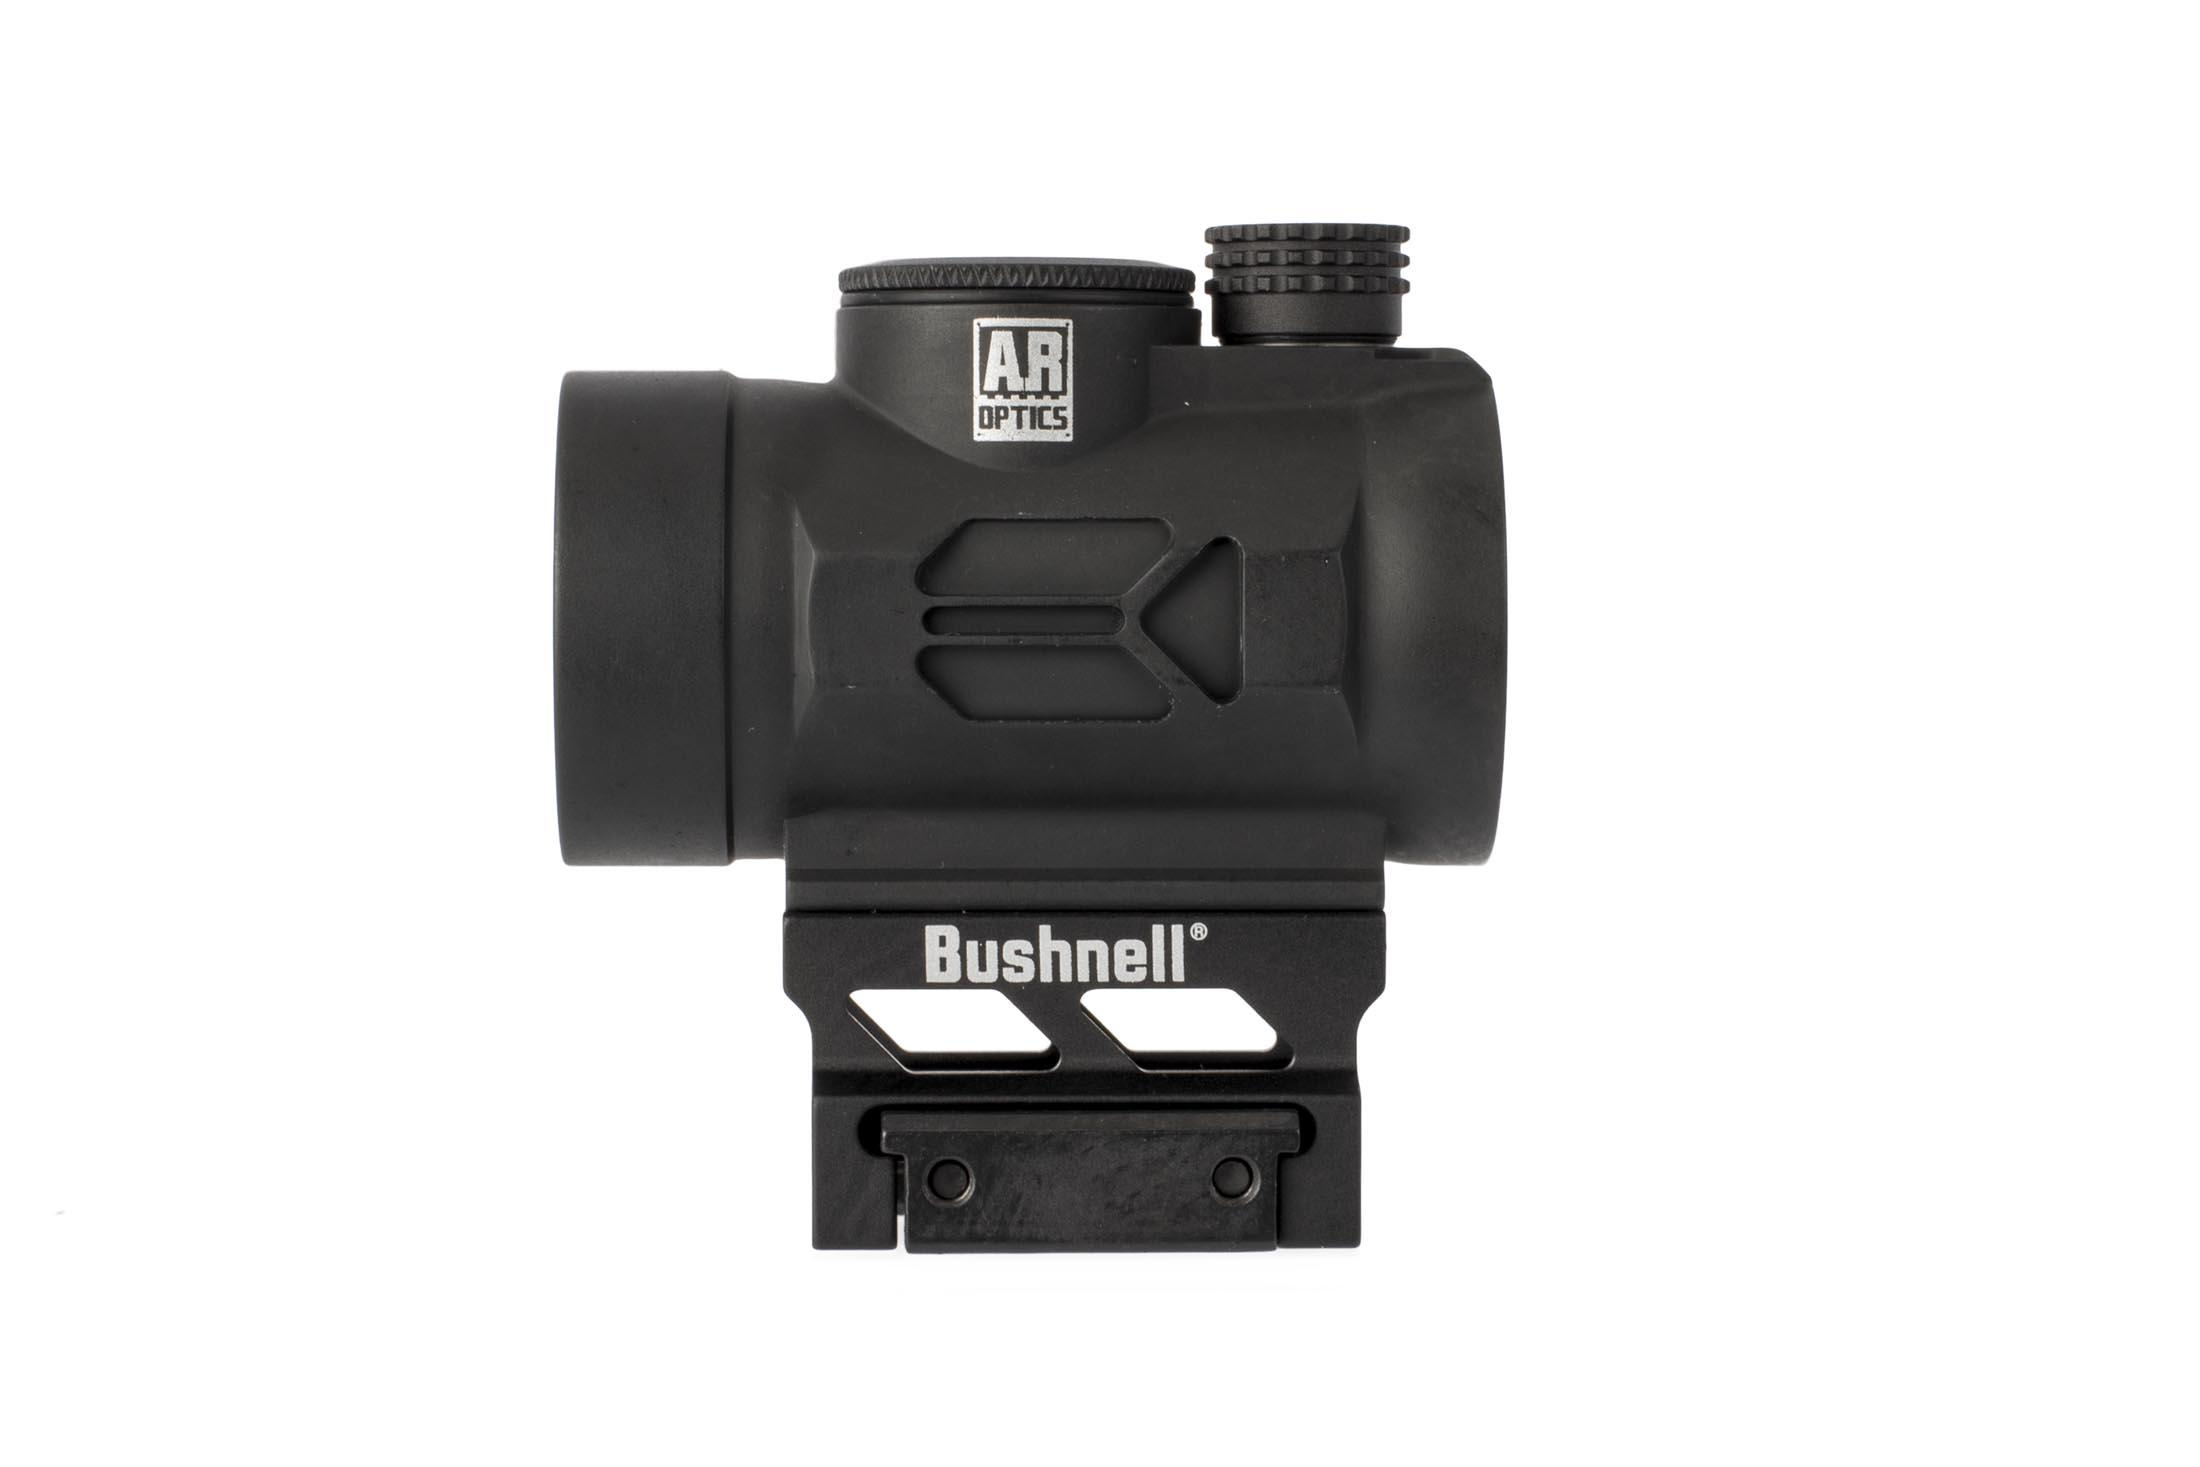 Bushnell TRS26 1x25mm red dot sight is on an AR-height mount and top-mounted CR2032 battery